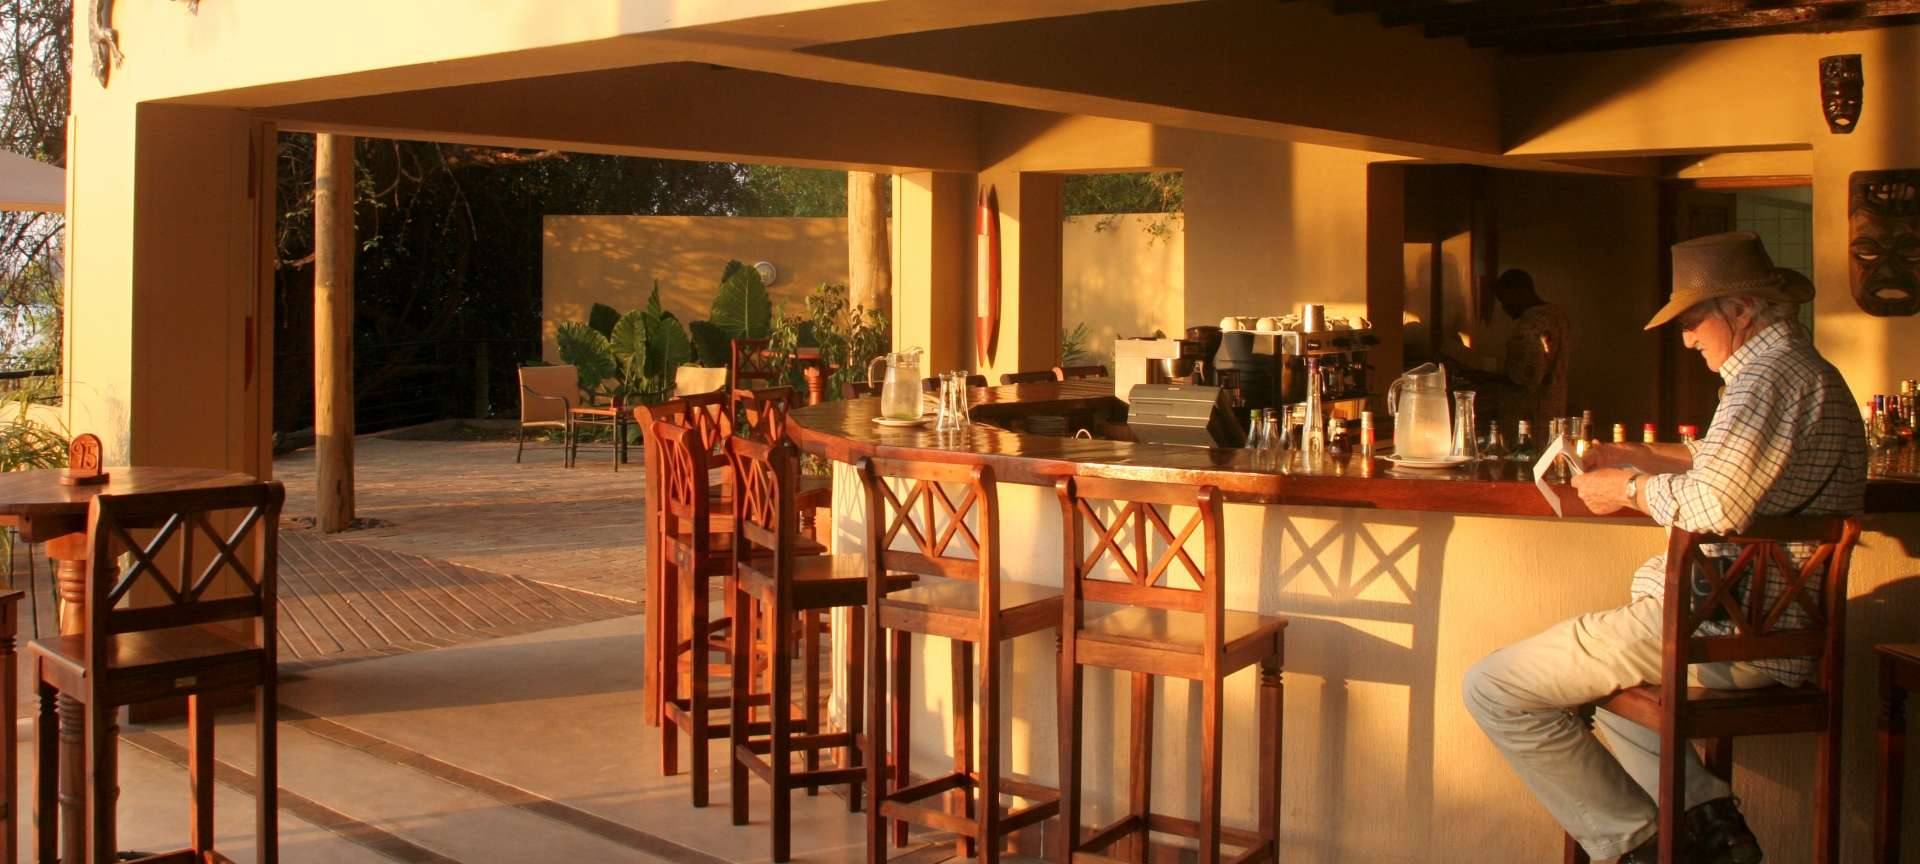 Savour a sundowner at Chobe Safari Lodge